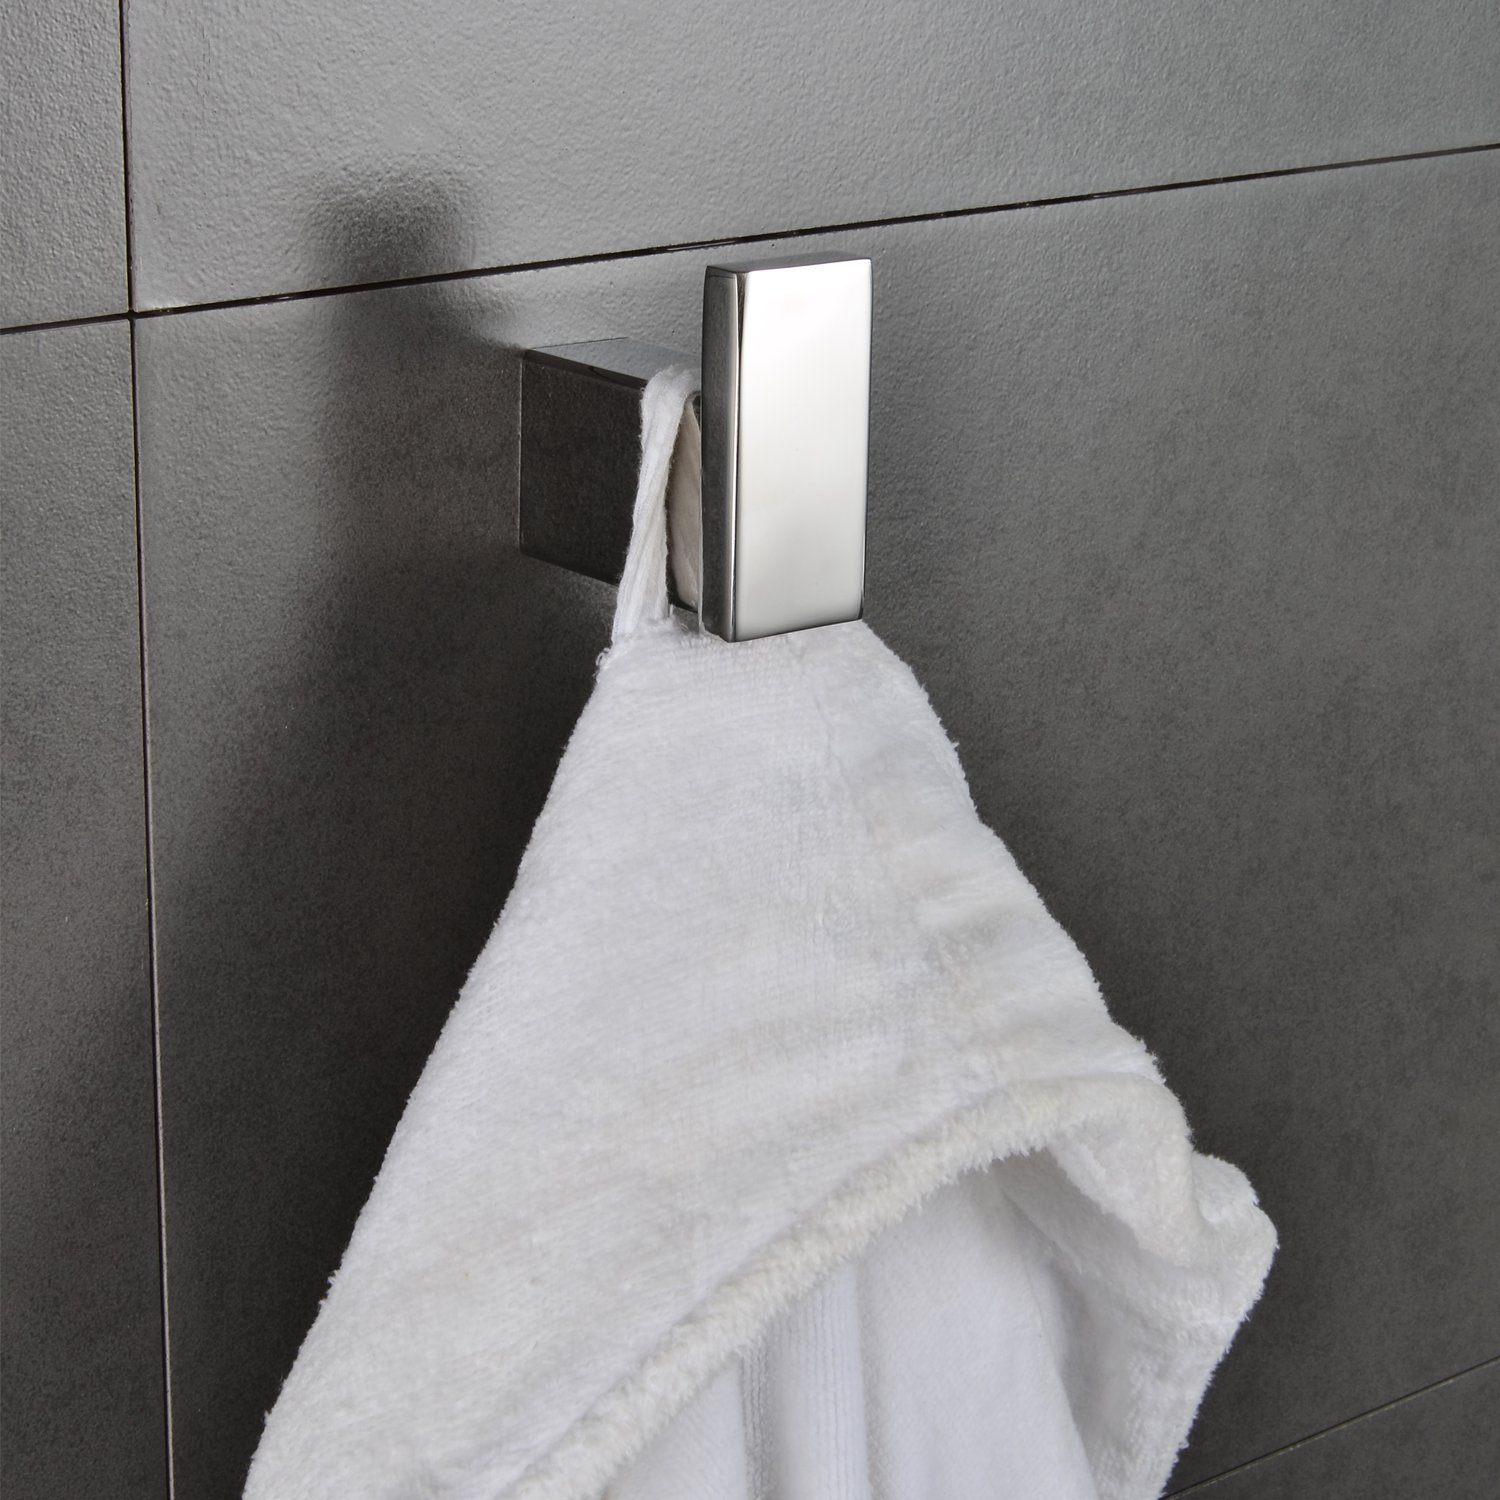 Single Robe Hook Stainless Steel Bathroom Towel Kitchen Hanger Large Square Heavy Duty Modern Bath Towel & Clothes Holder Bath Hardware Wall Mount Polished Chrome MARMOLUX ACC by Marmolux Acc